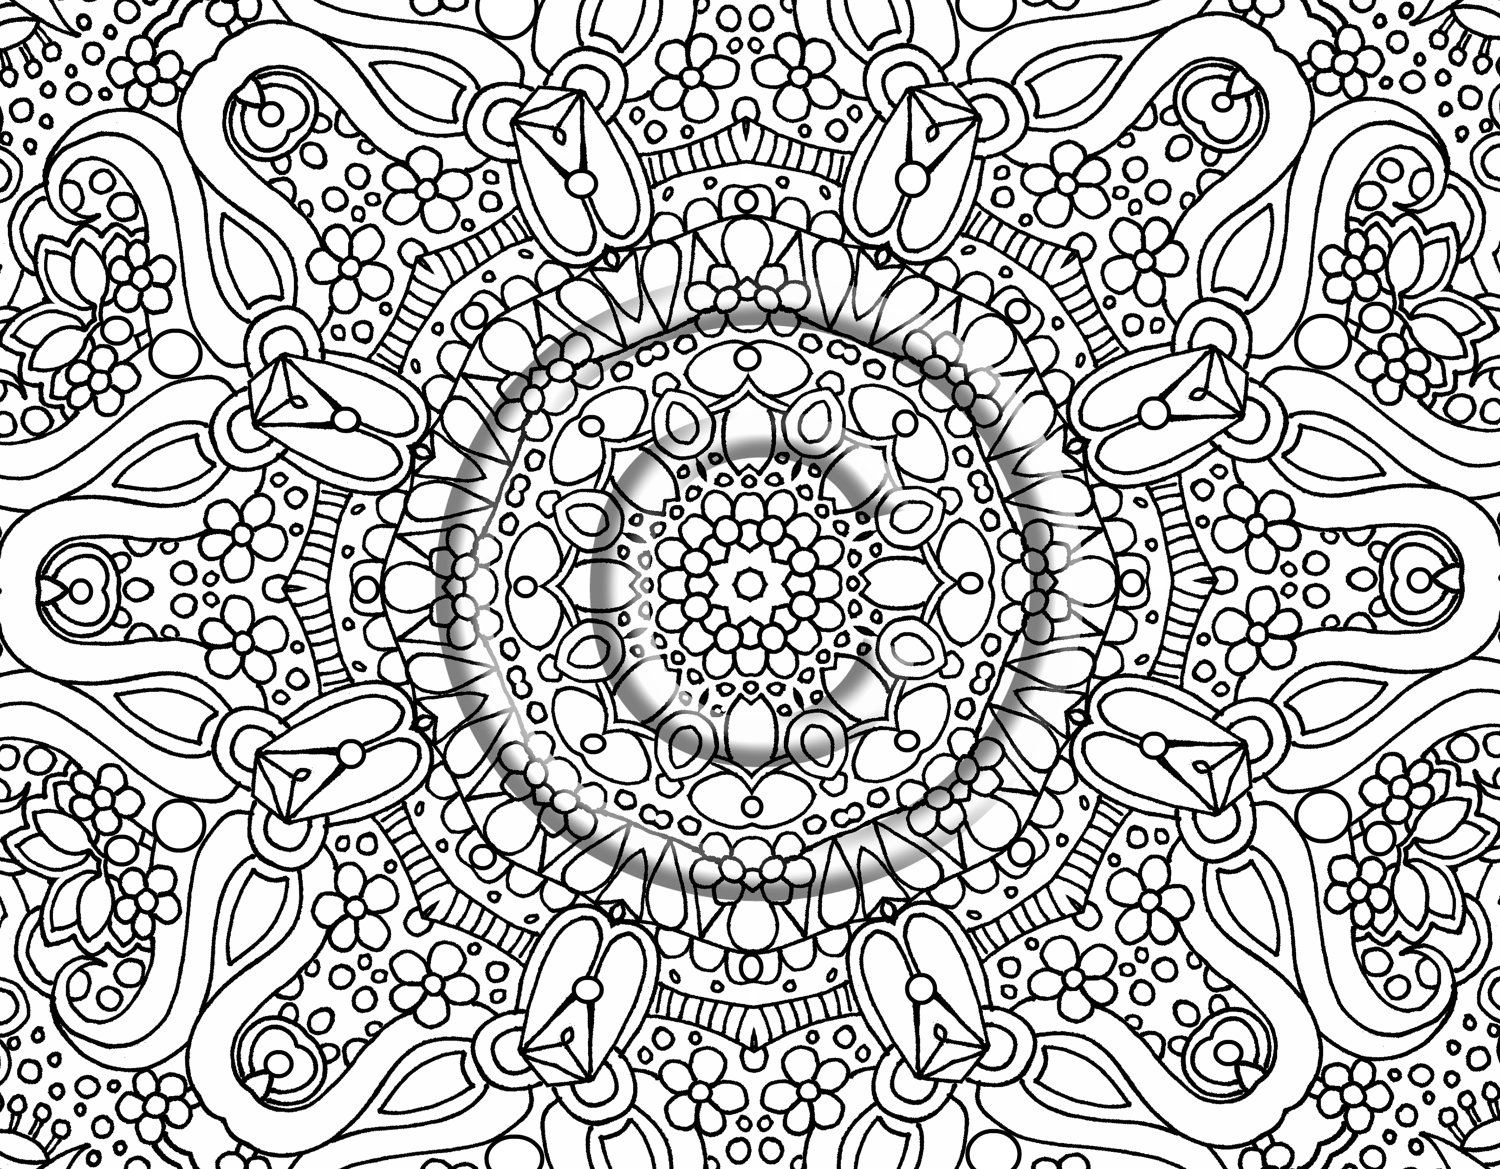 Hard Coloring Sheet Free Coloring Pages On Art Coloring Pages